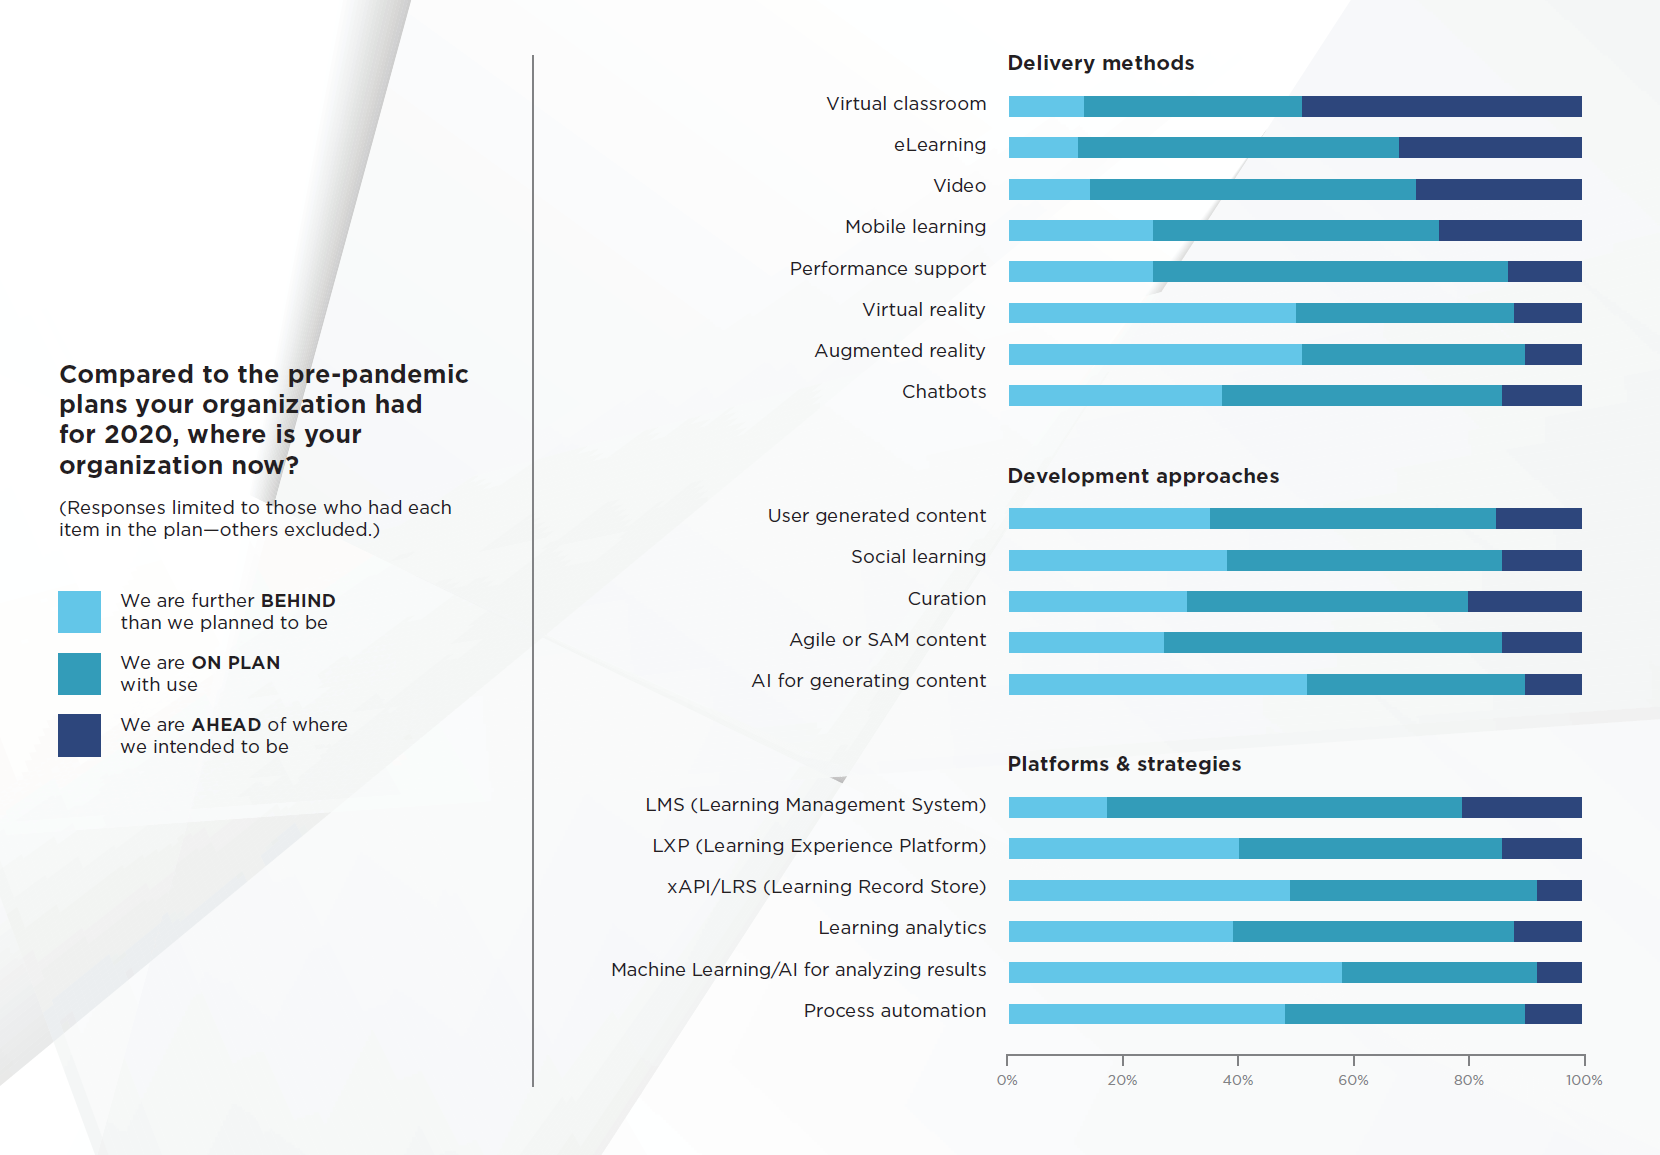 More professionals report being behind their plans for technology adoption than report being ahead